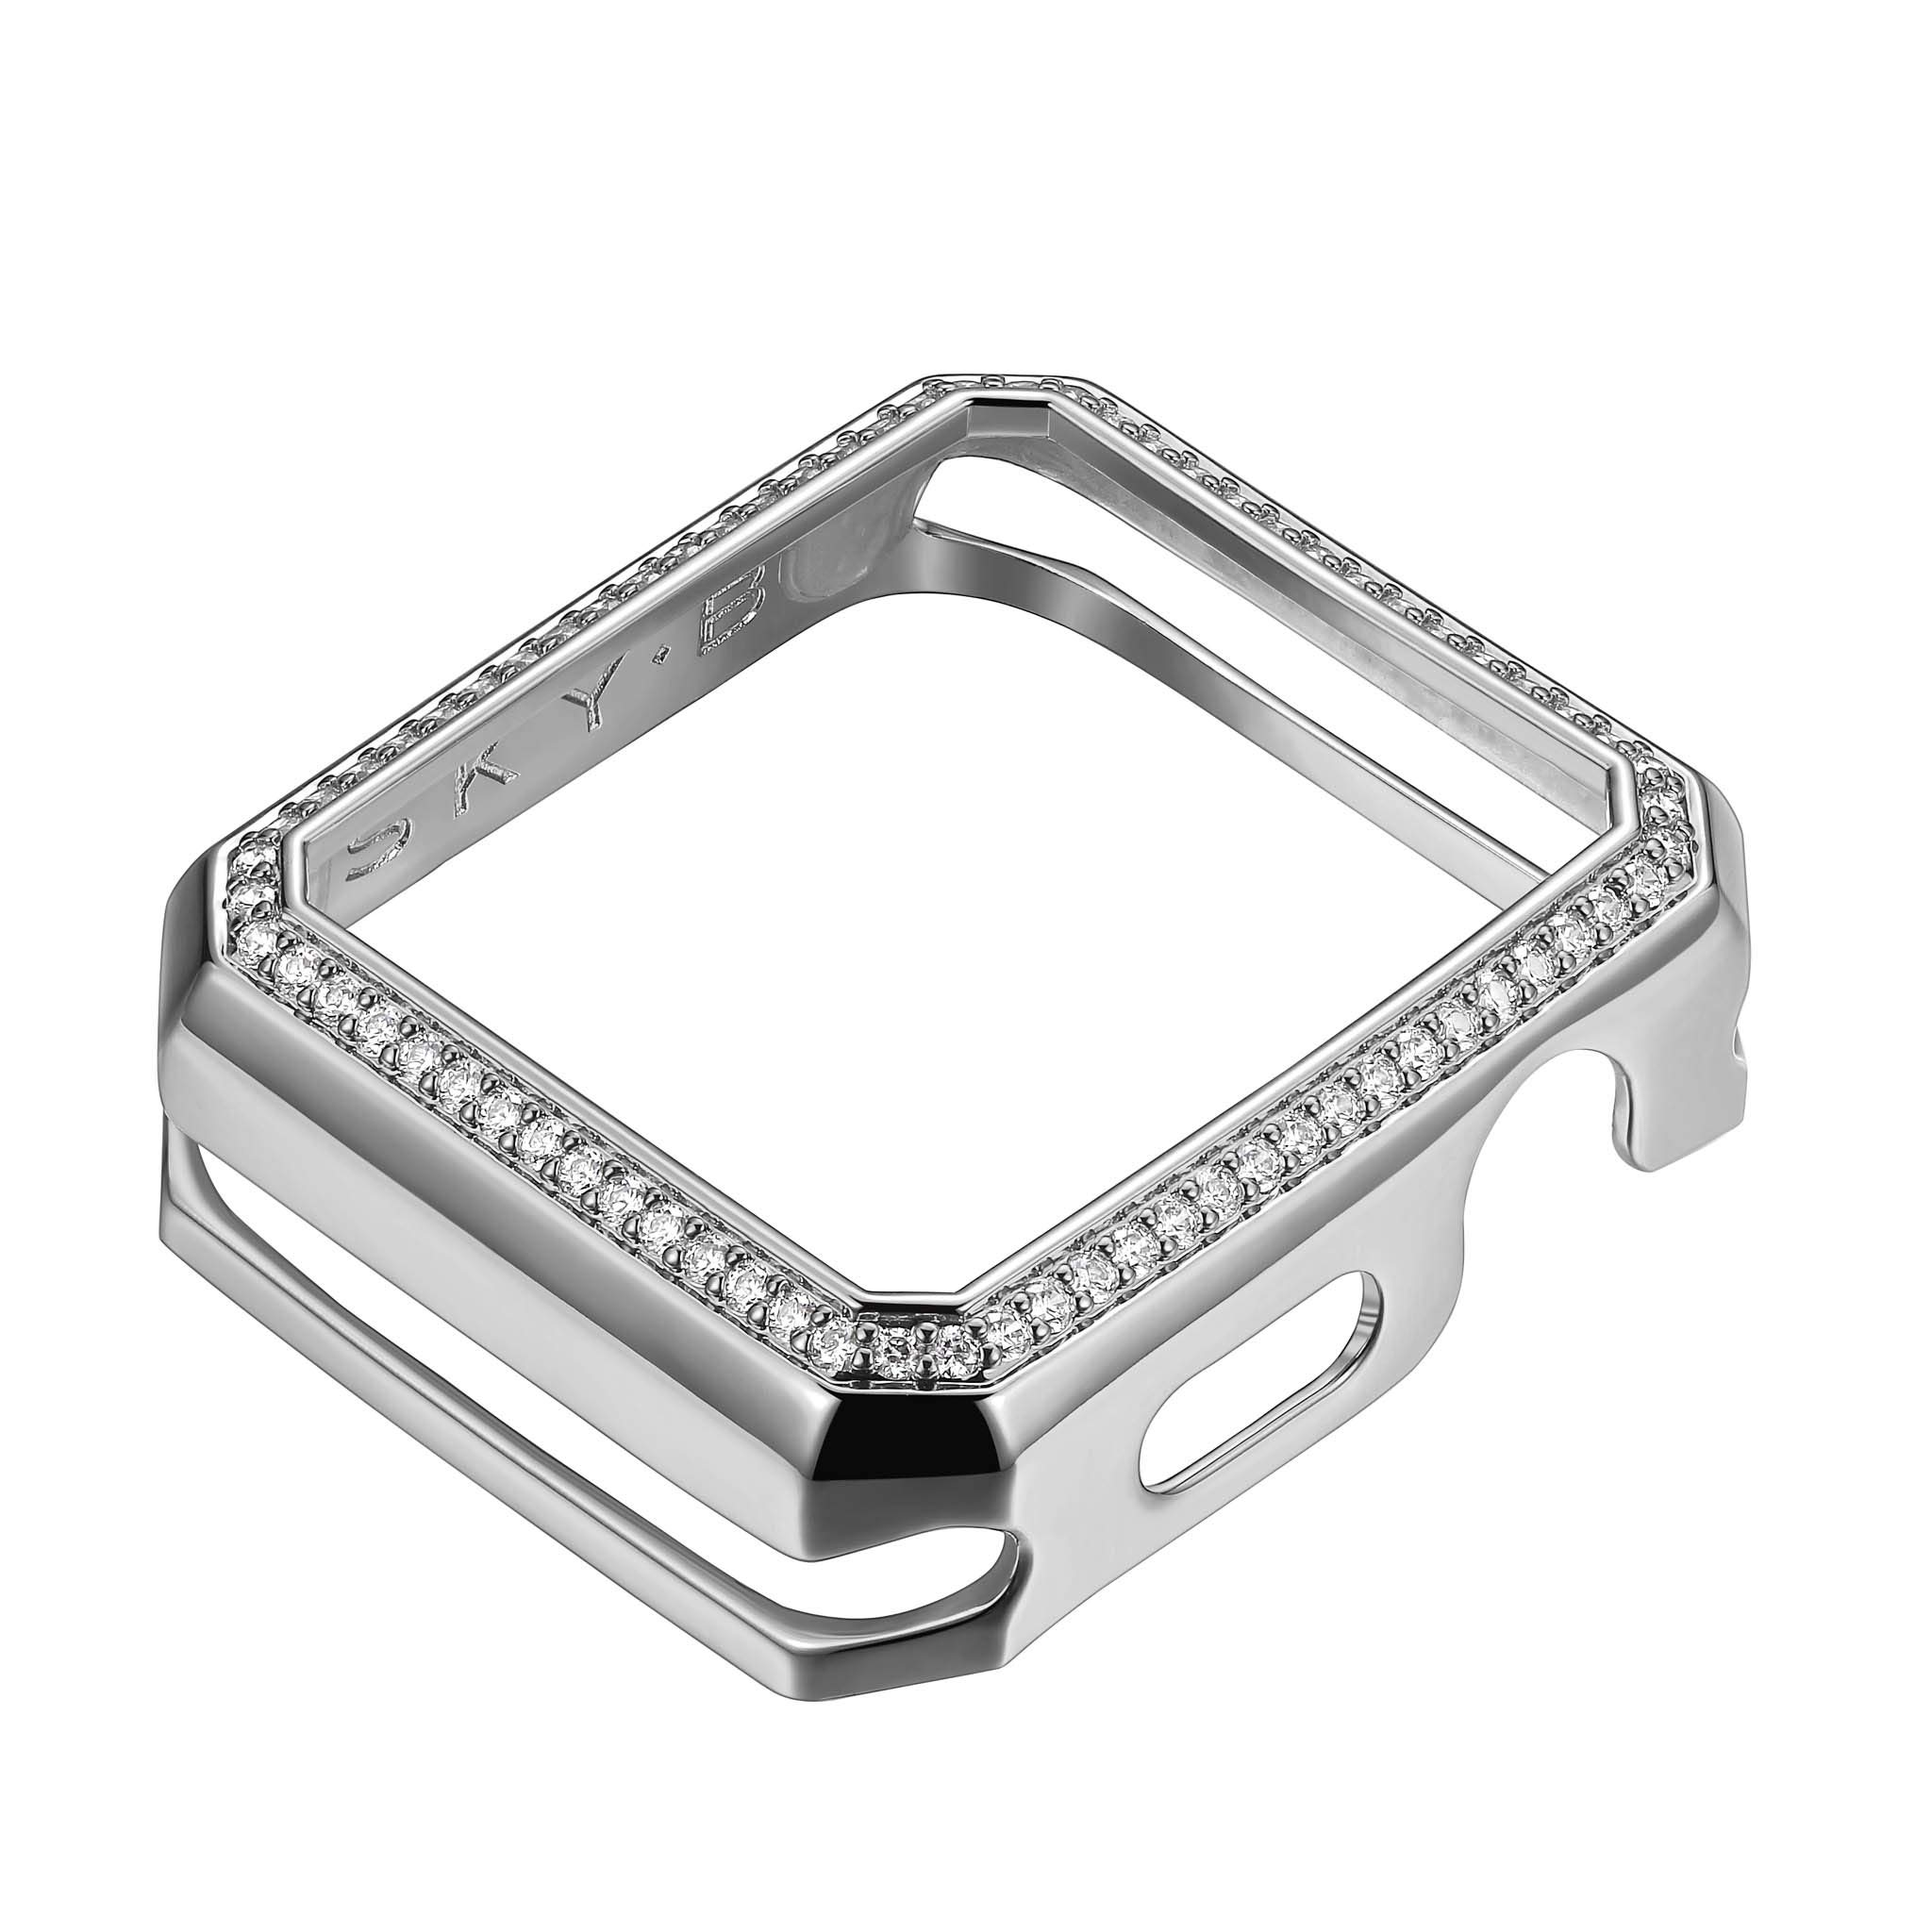 .925 Sterling Silver Rhodium Plated Bronze Deco Halo Jewelry-Style Apple Watch Case with Zirconia CZ Border - Large (Fits 42mm Series 1/2/3 iWatch) by SKYB